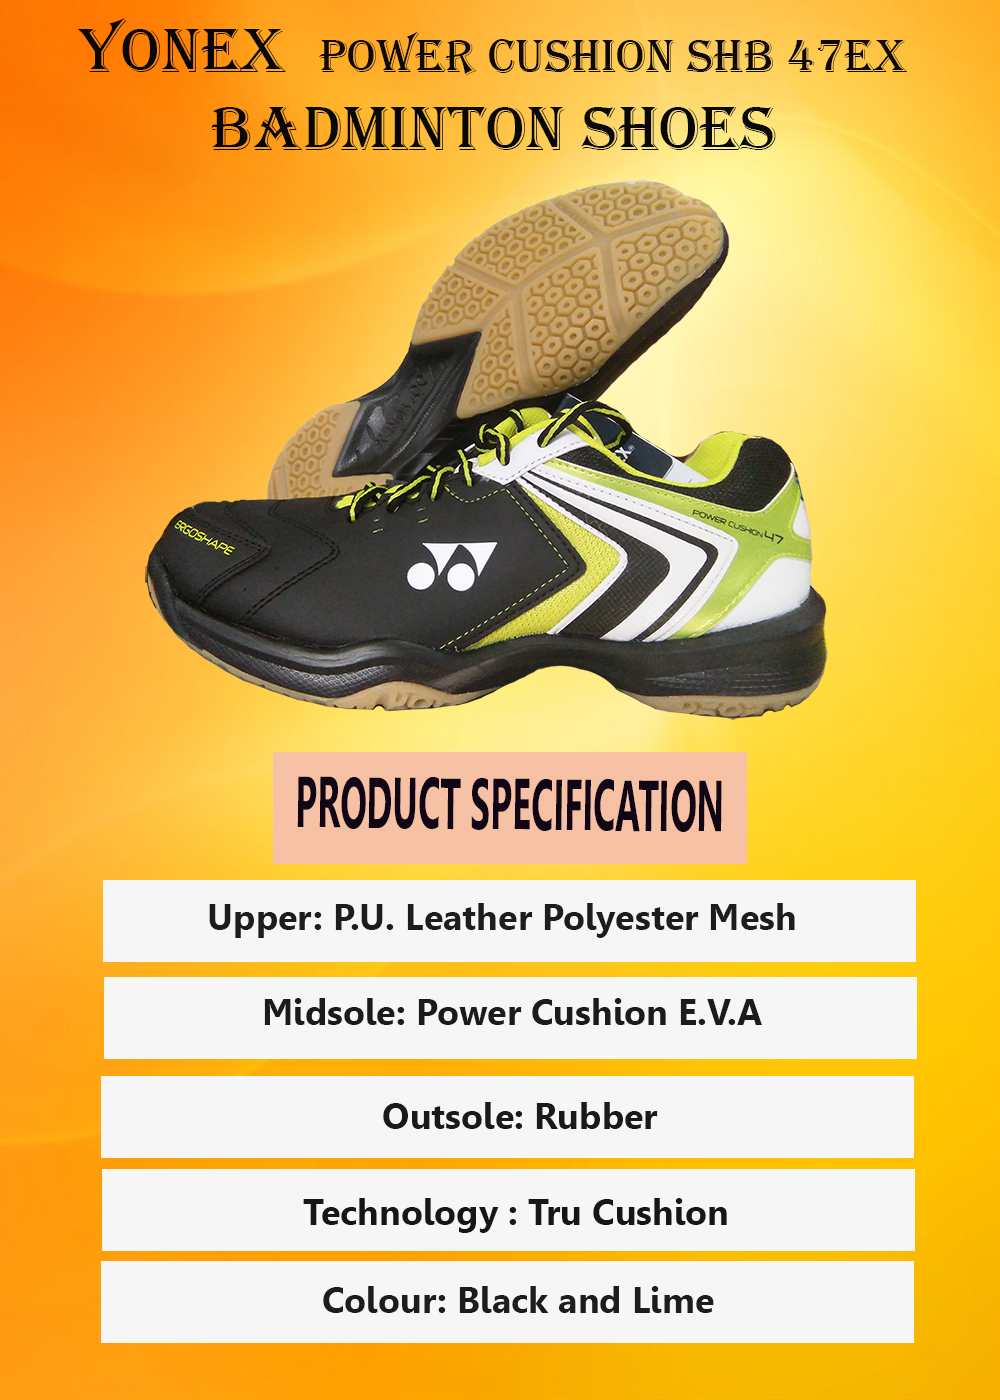 Yonex Power Cushion SHB 47EX Black and Lime_3